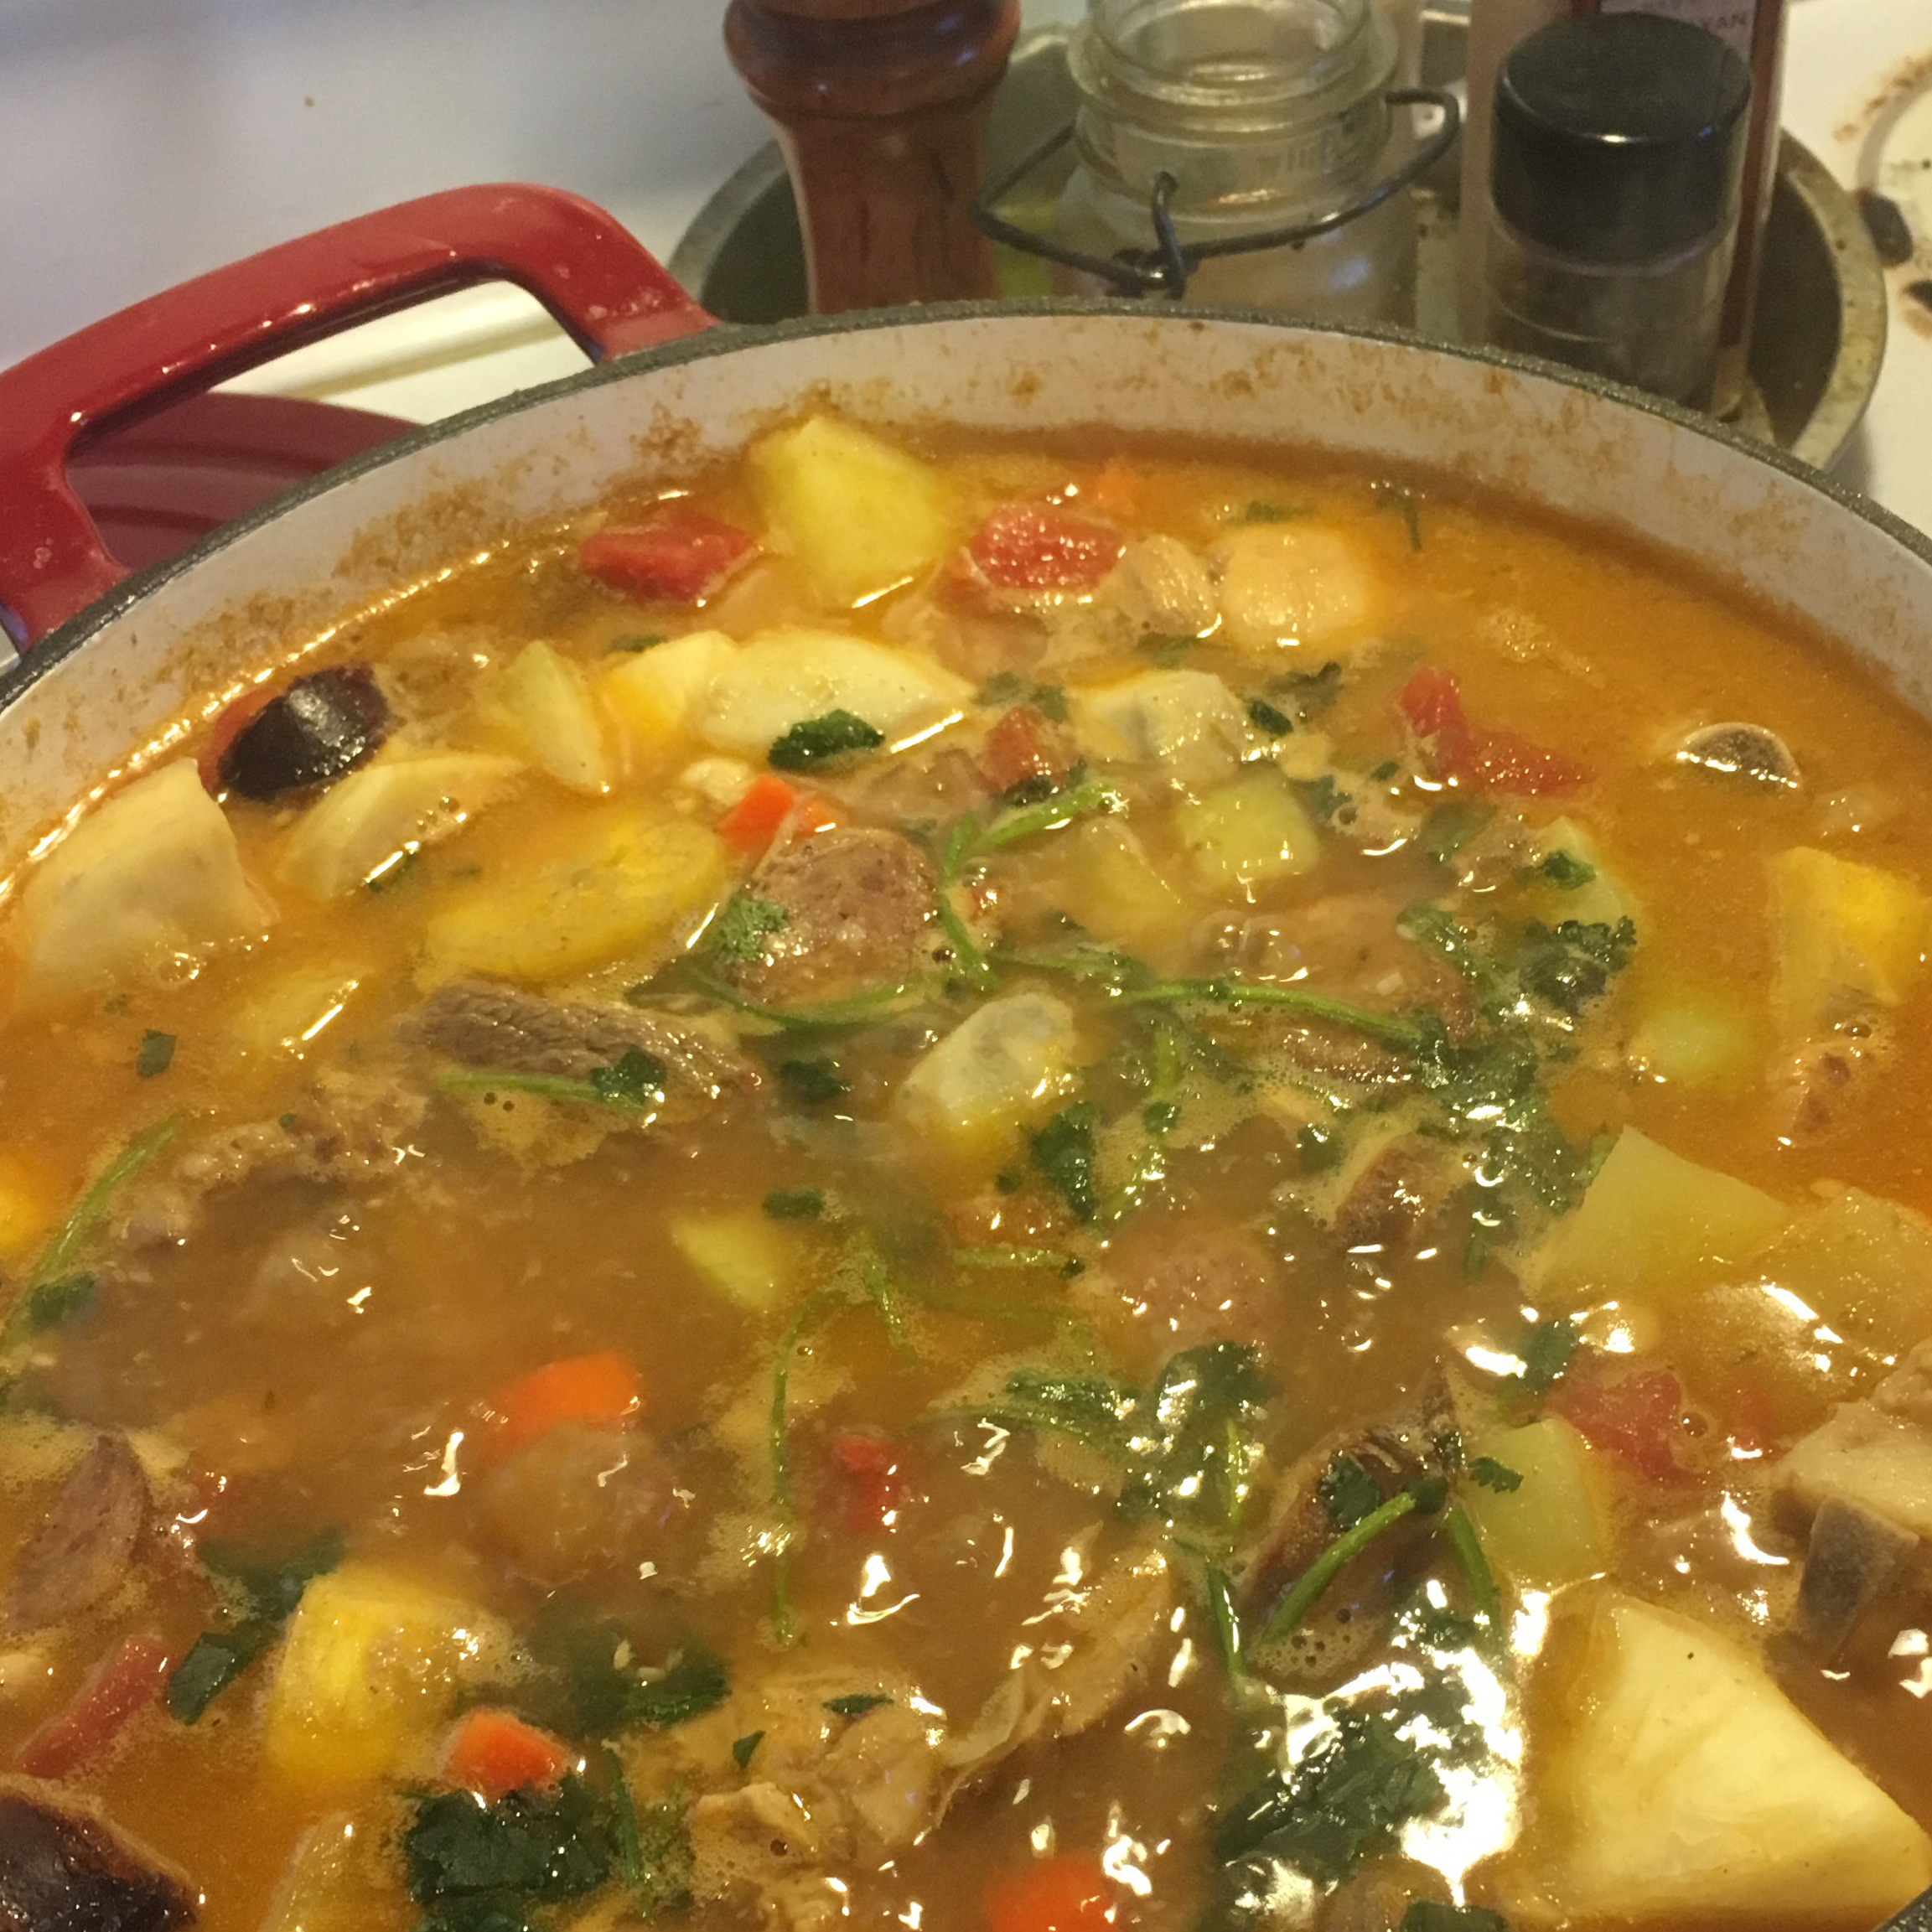 True Dominican Sancocho (Latin 7-Meat Stew) porchia